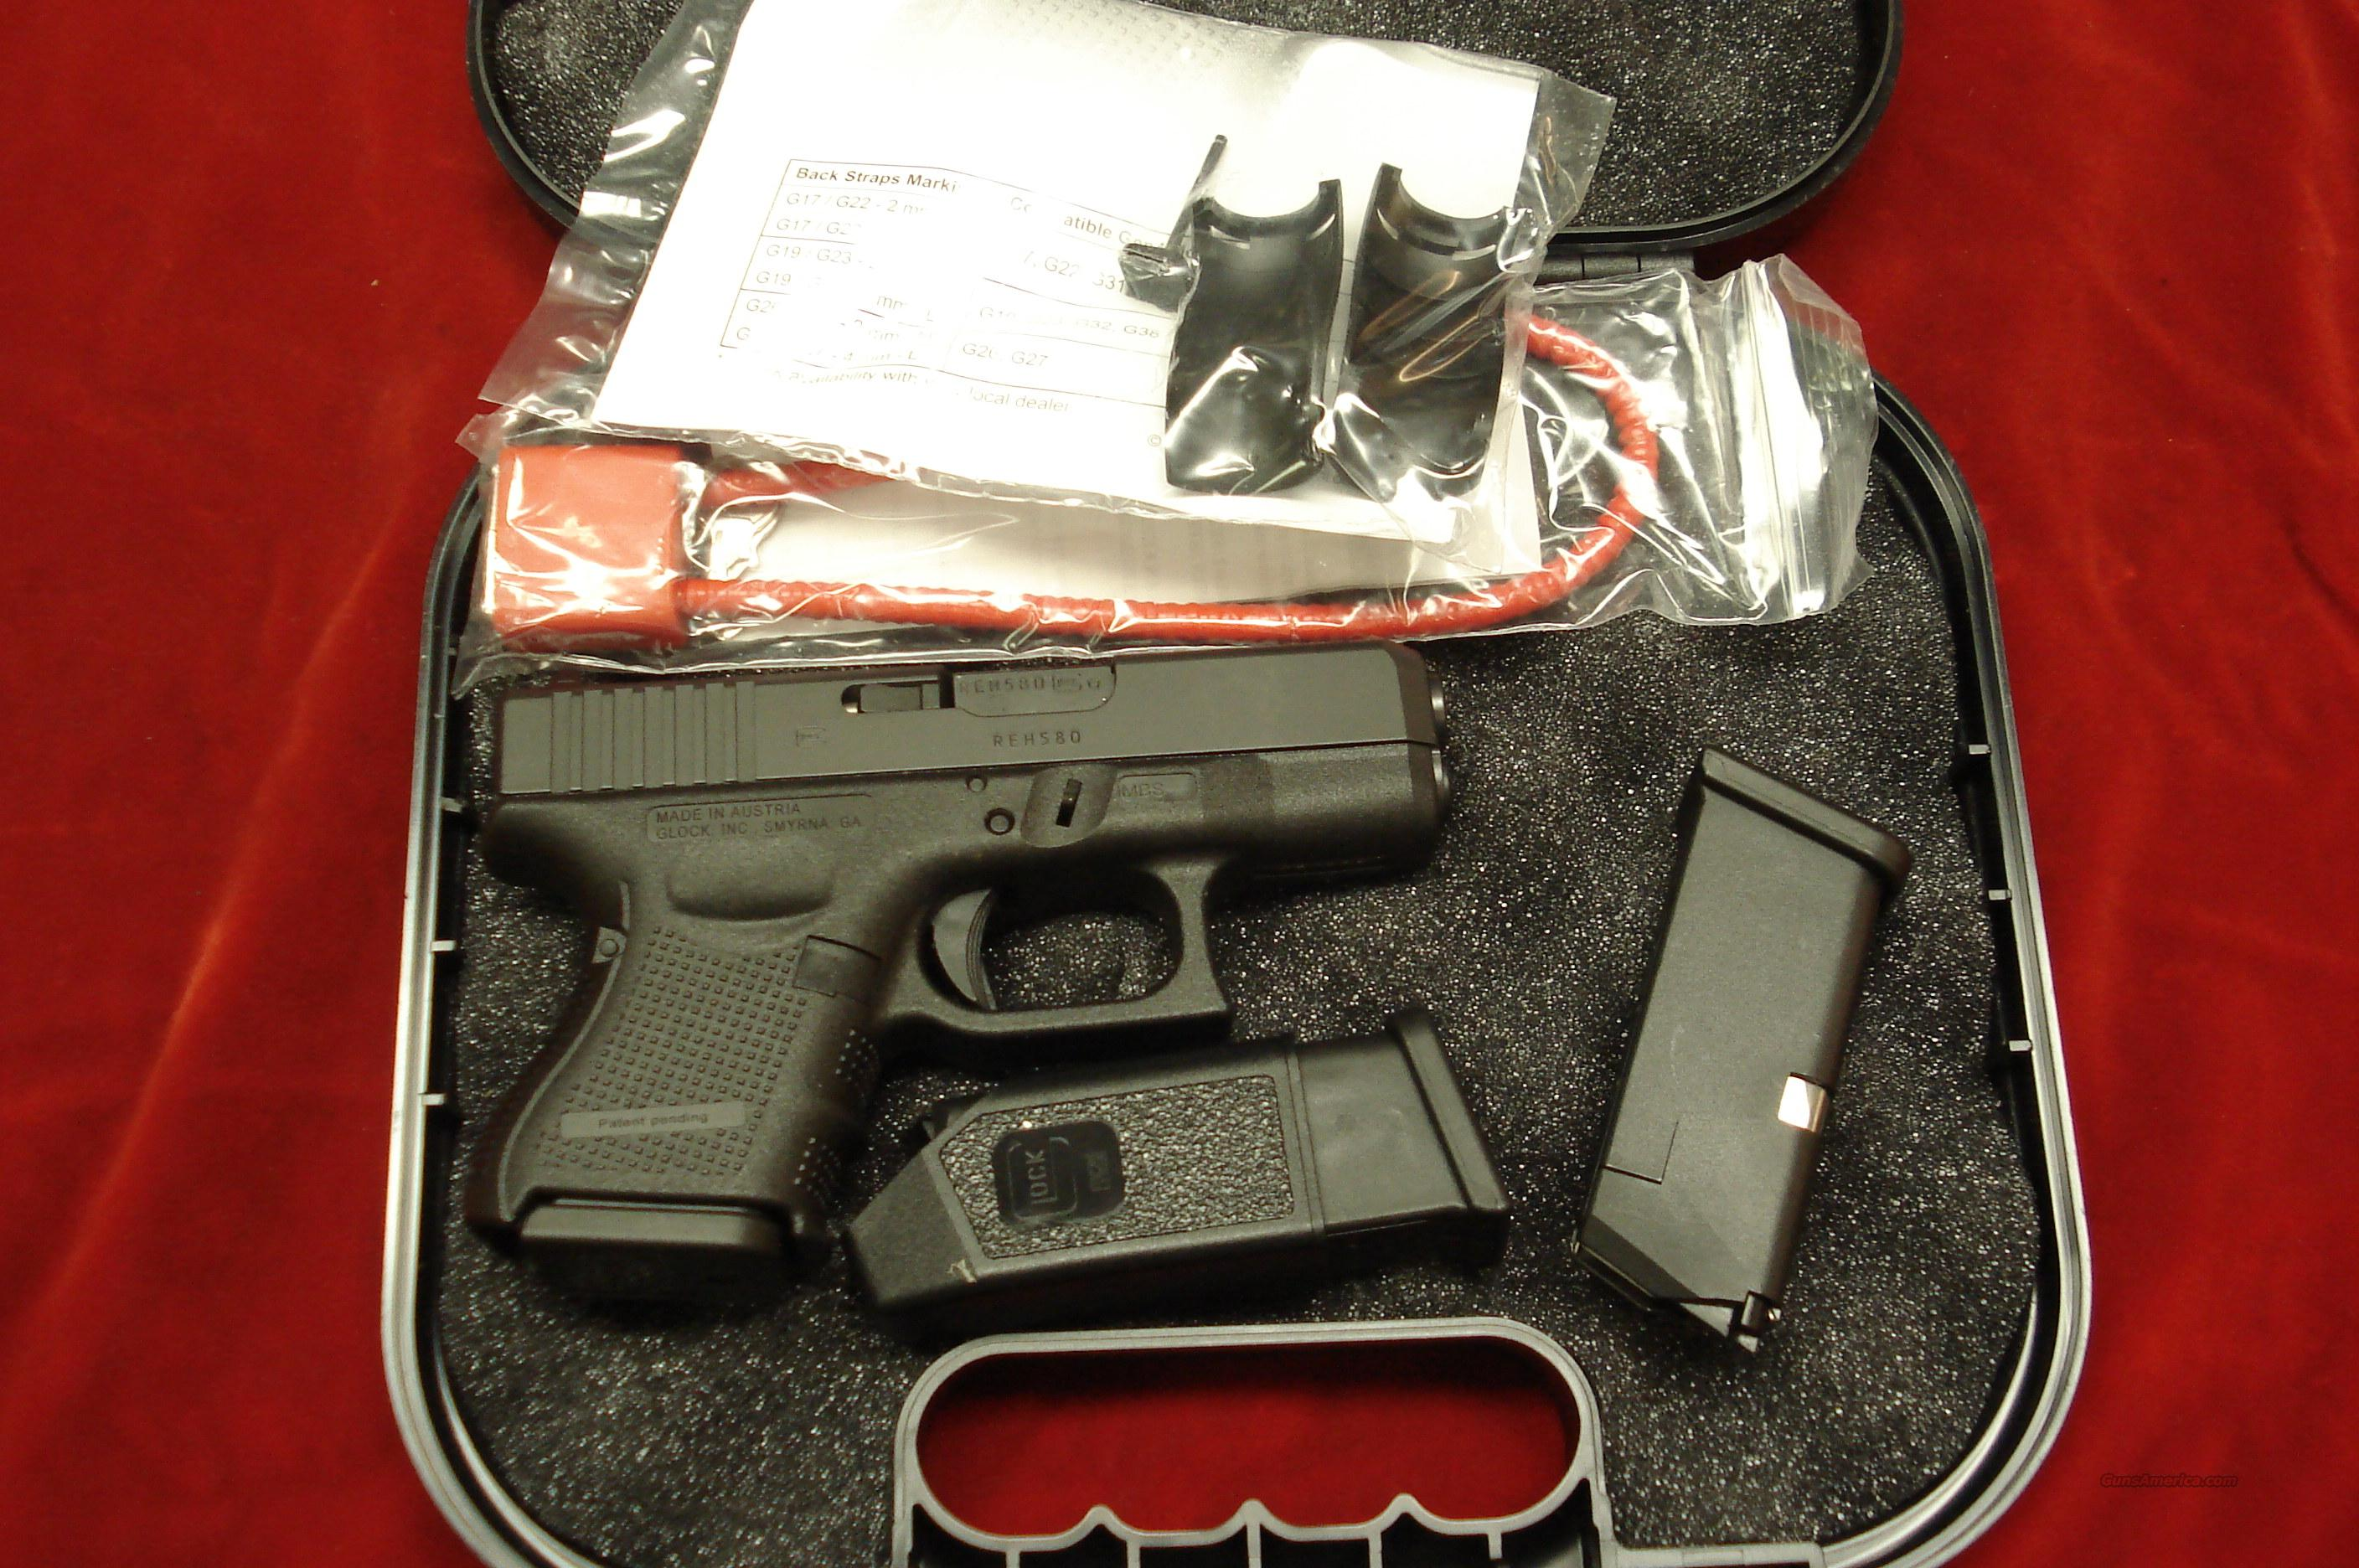 GLOCK MODEL 26 GENERATION 4 .9MM CAL. WITH 3 MAGAZINES NEW   Guns > Pistols > Glock Pistols > 26/27